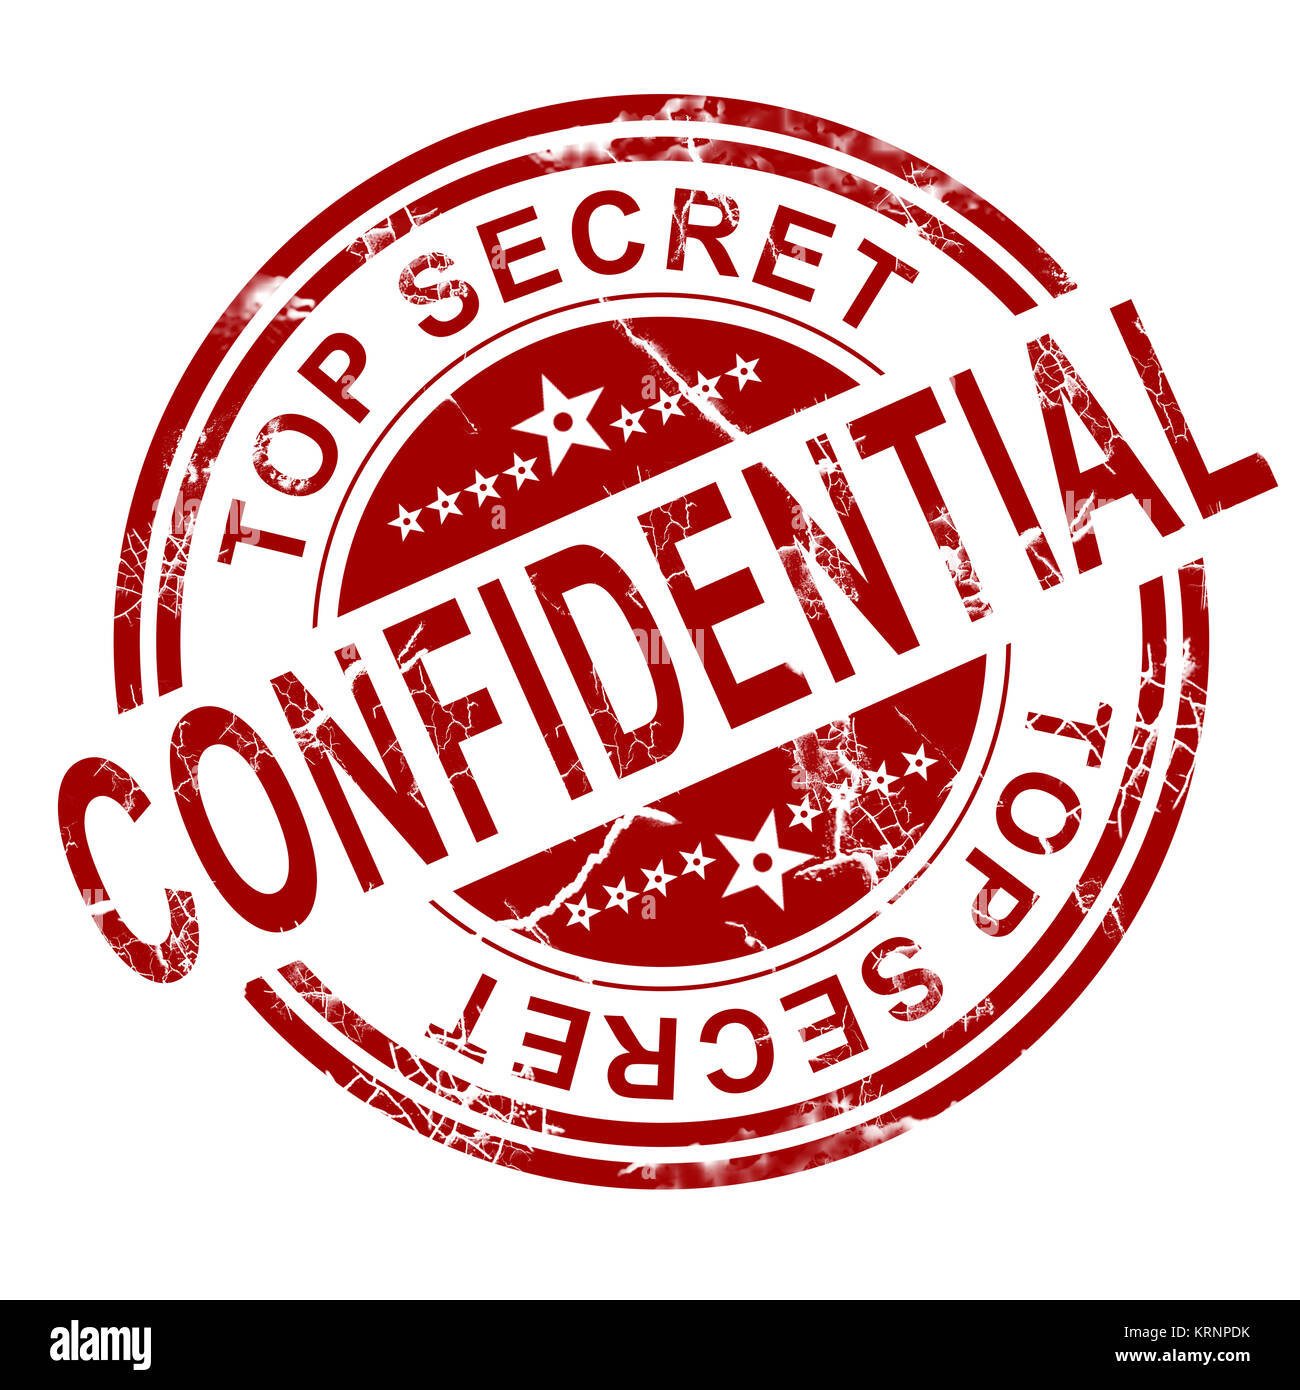 Red Confidential Stamp Stock Photo 169509023